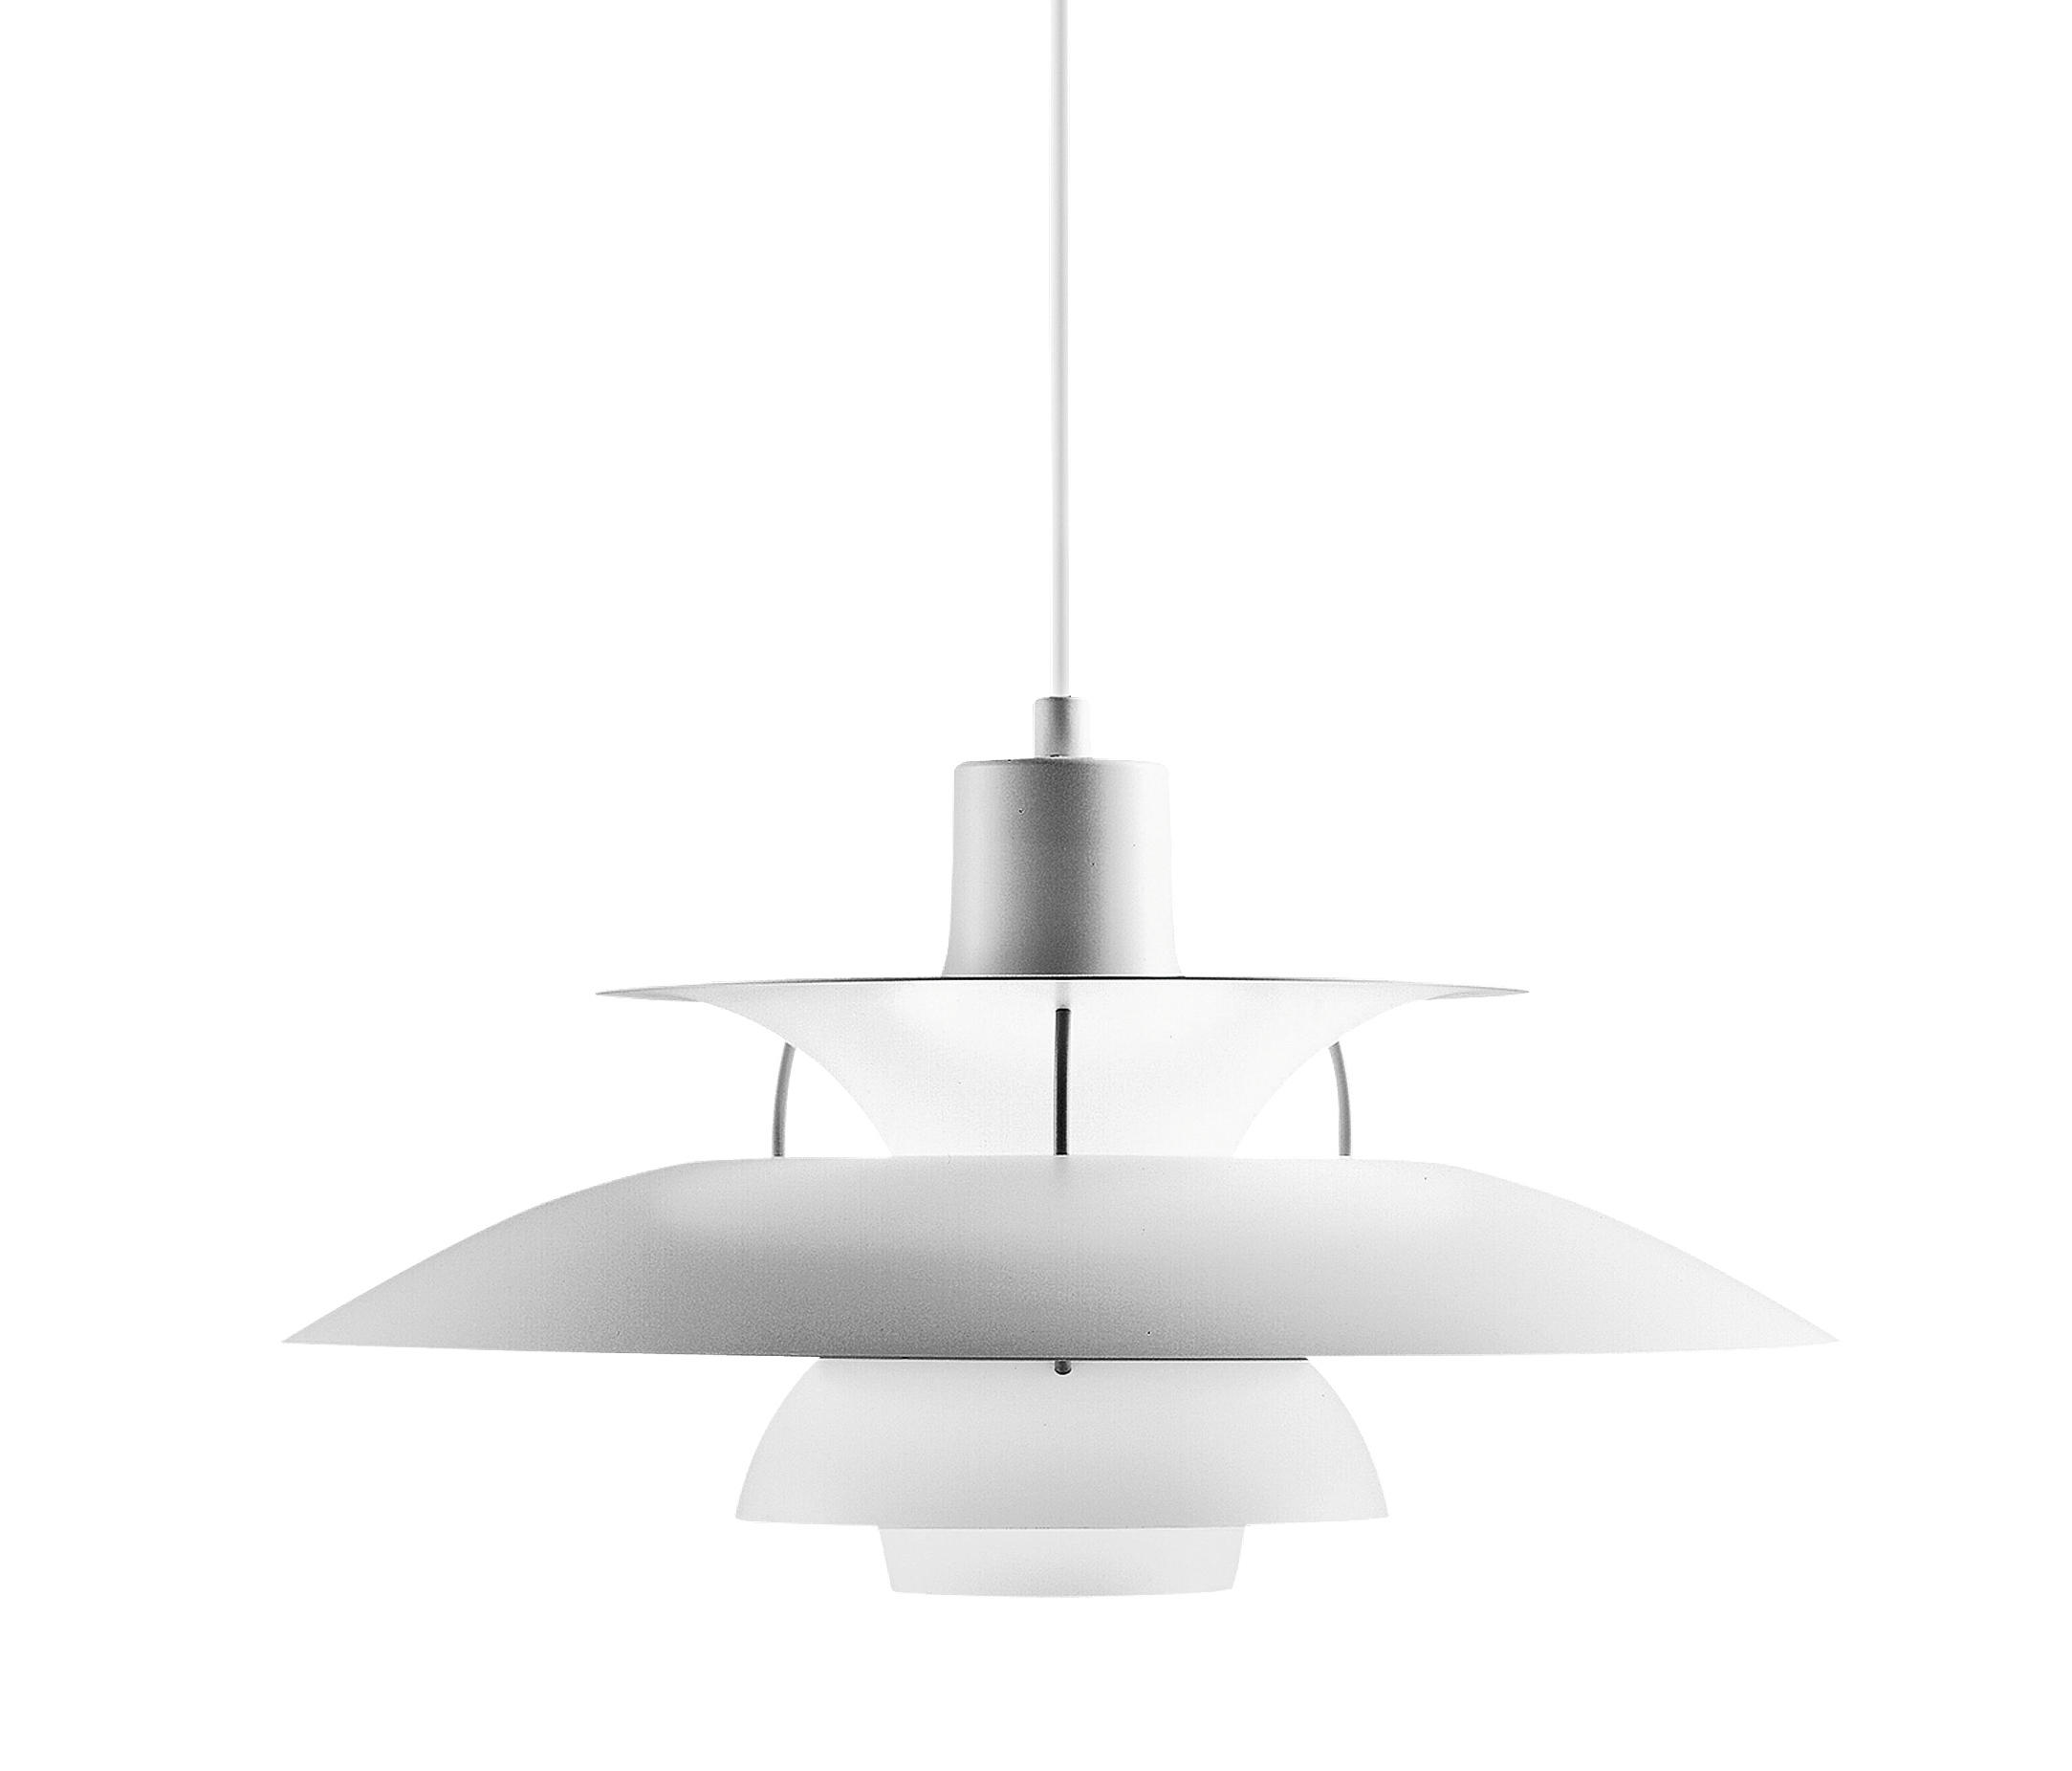 PH 5 PENDANT - General lighting from Louis Poulsen | Architonic for Louis Poulsen Ph50  585ifm